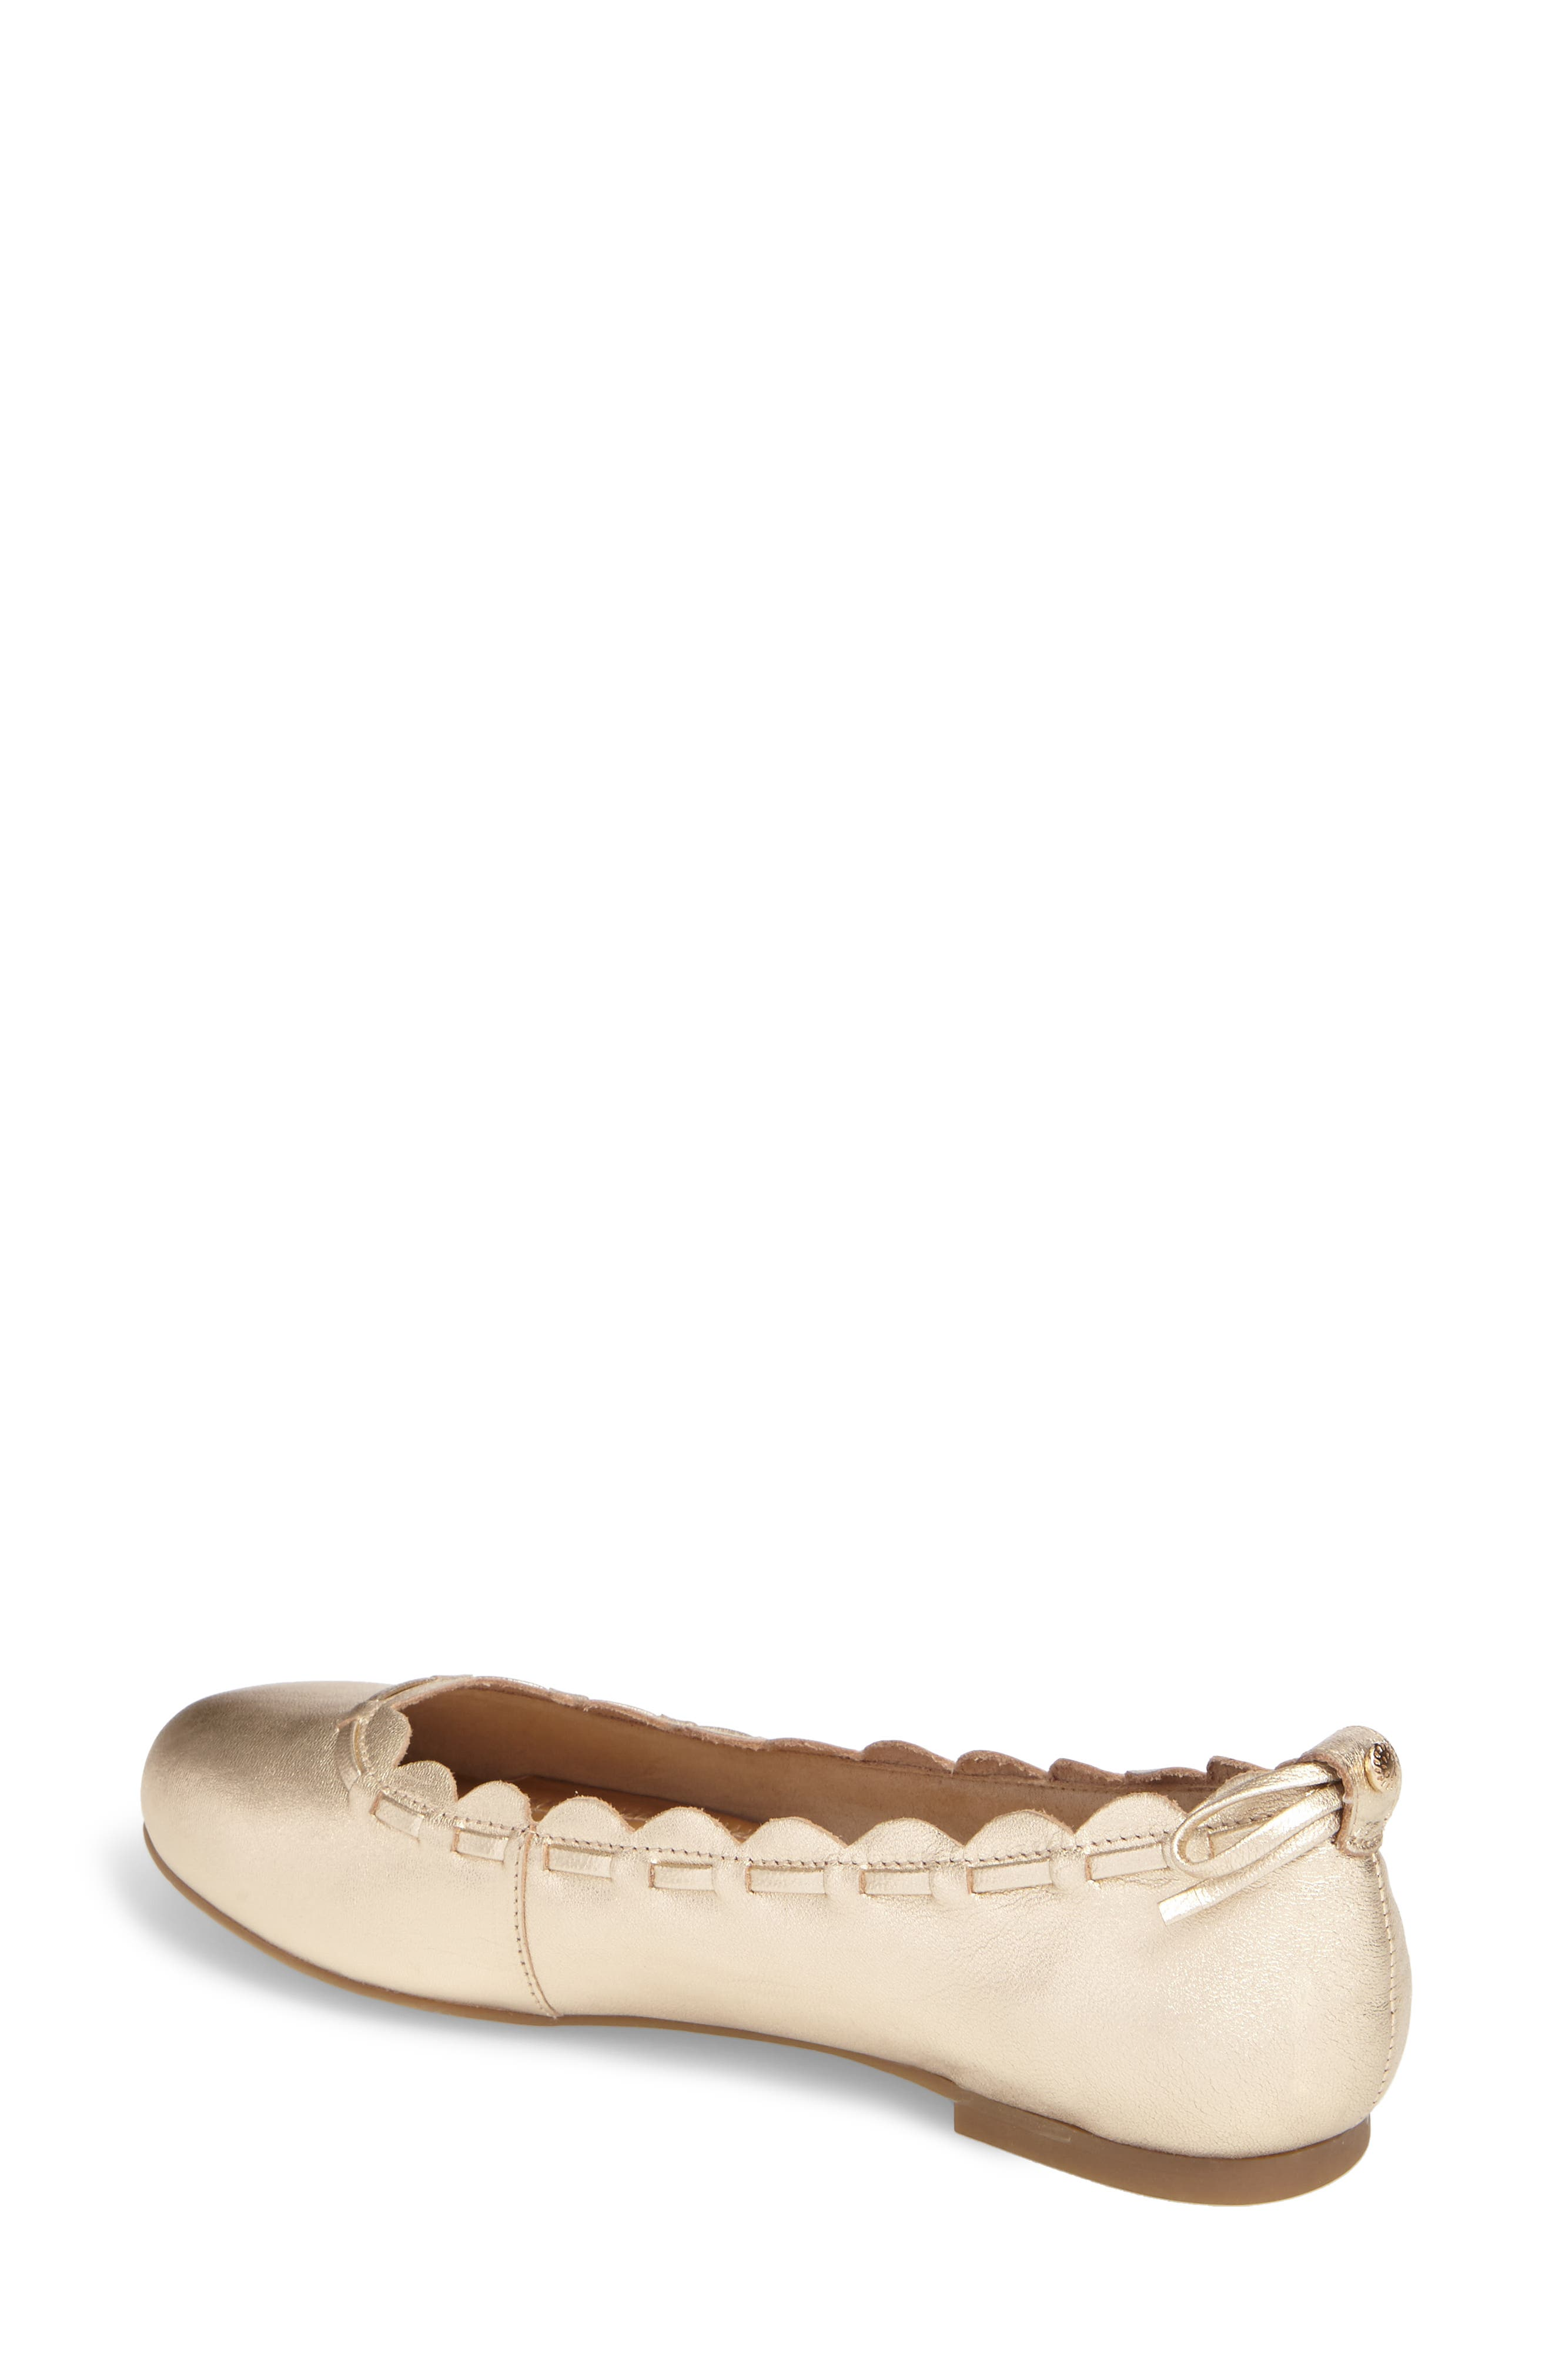 Lucie Scalloped Flat,                             Alternate thumbnail 2, color,                             040